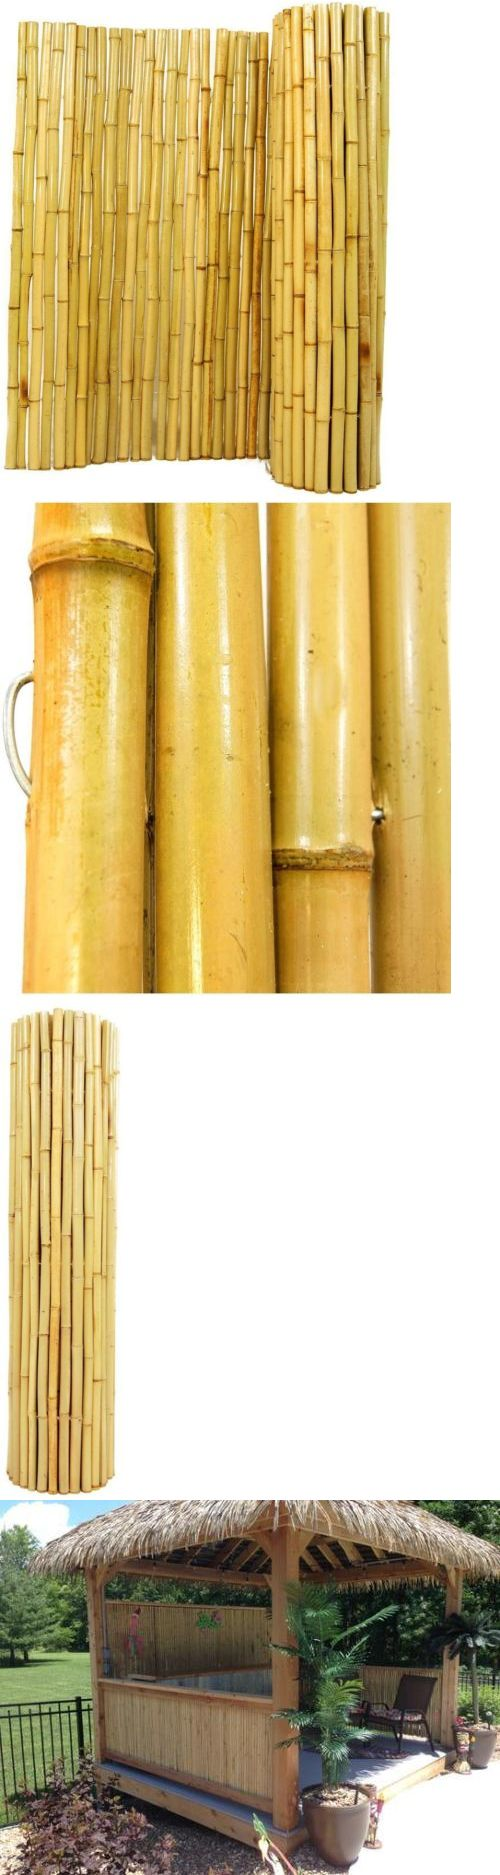 Other Garden Fencing 177033: Natural Rolled Bamboo Fence Un-Treated Pest Resistant Versatile Panel Gate Doors -> BUY IT NOW ONLY: $60.52 on eBay!